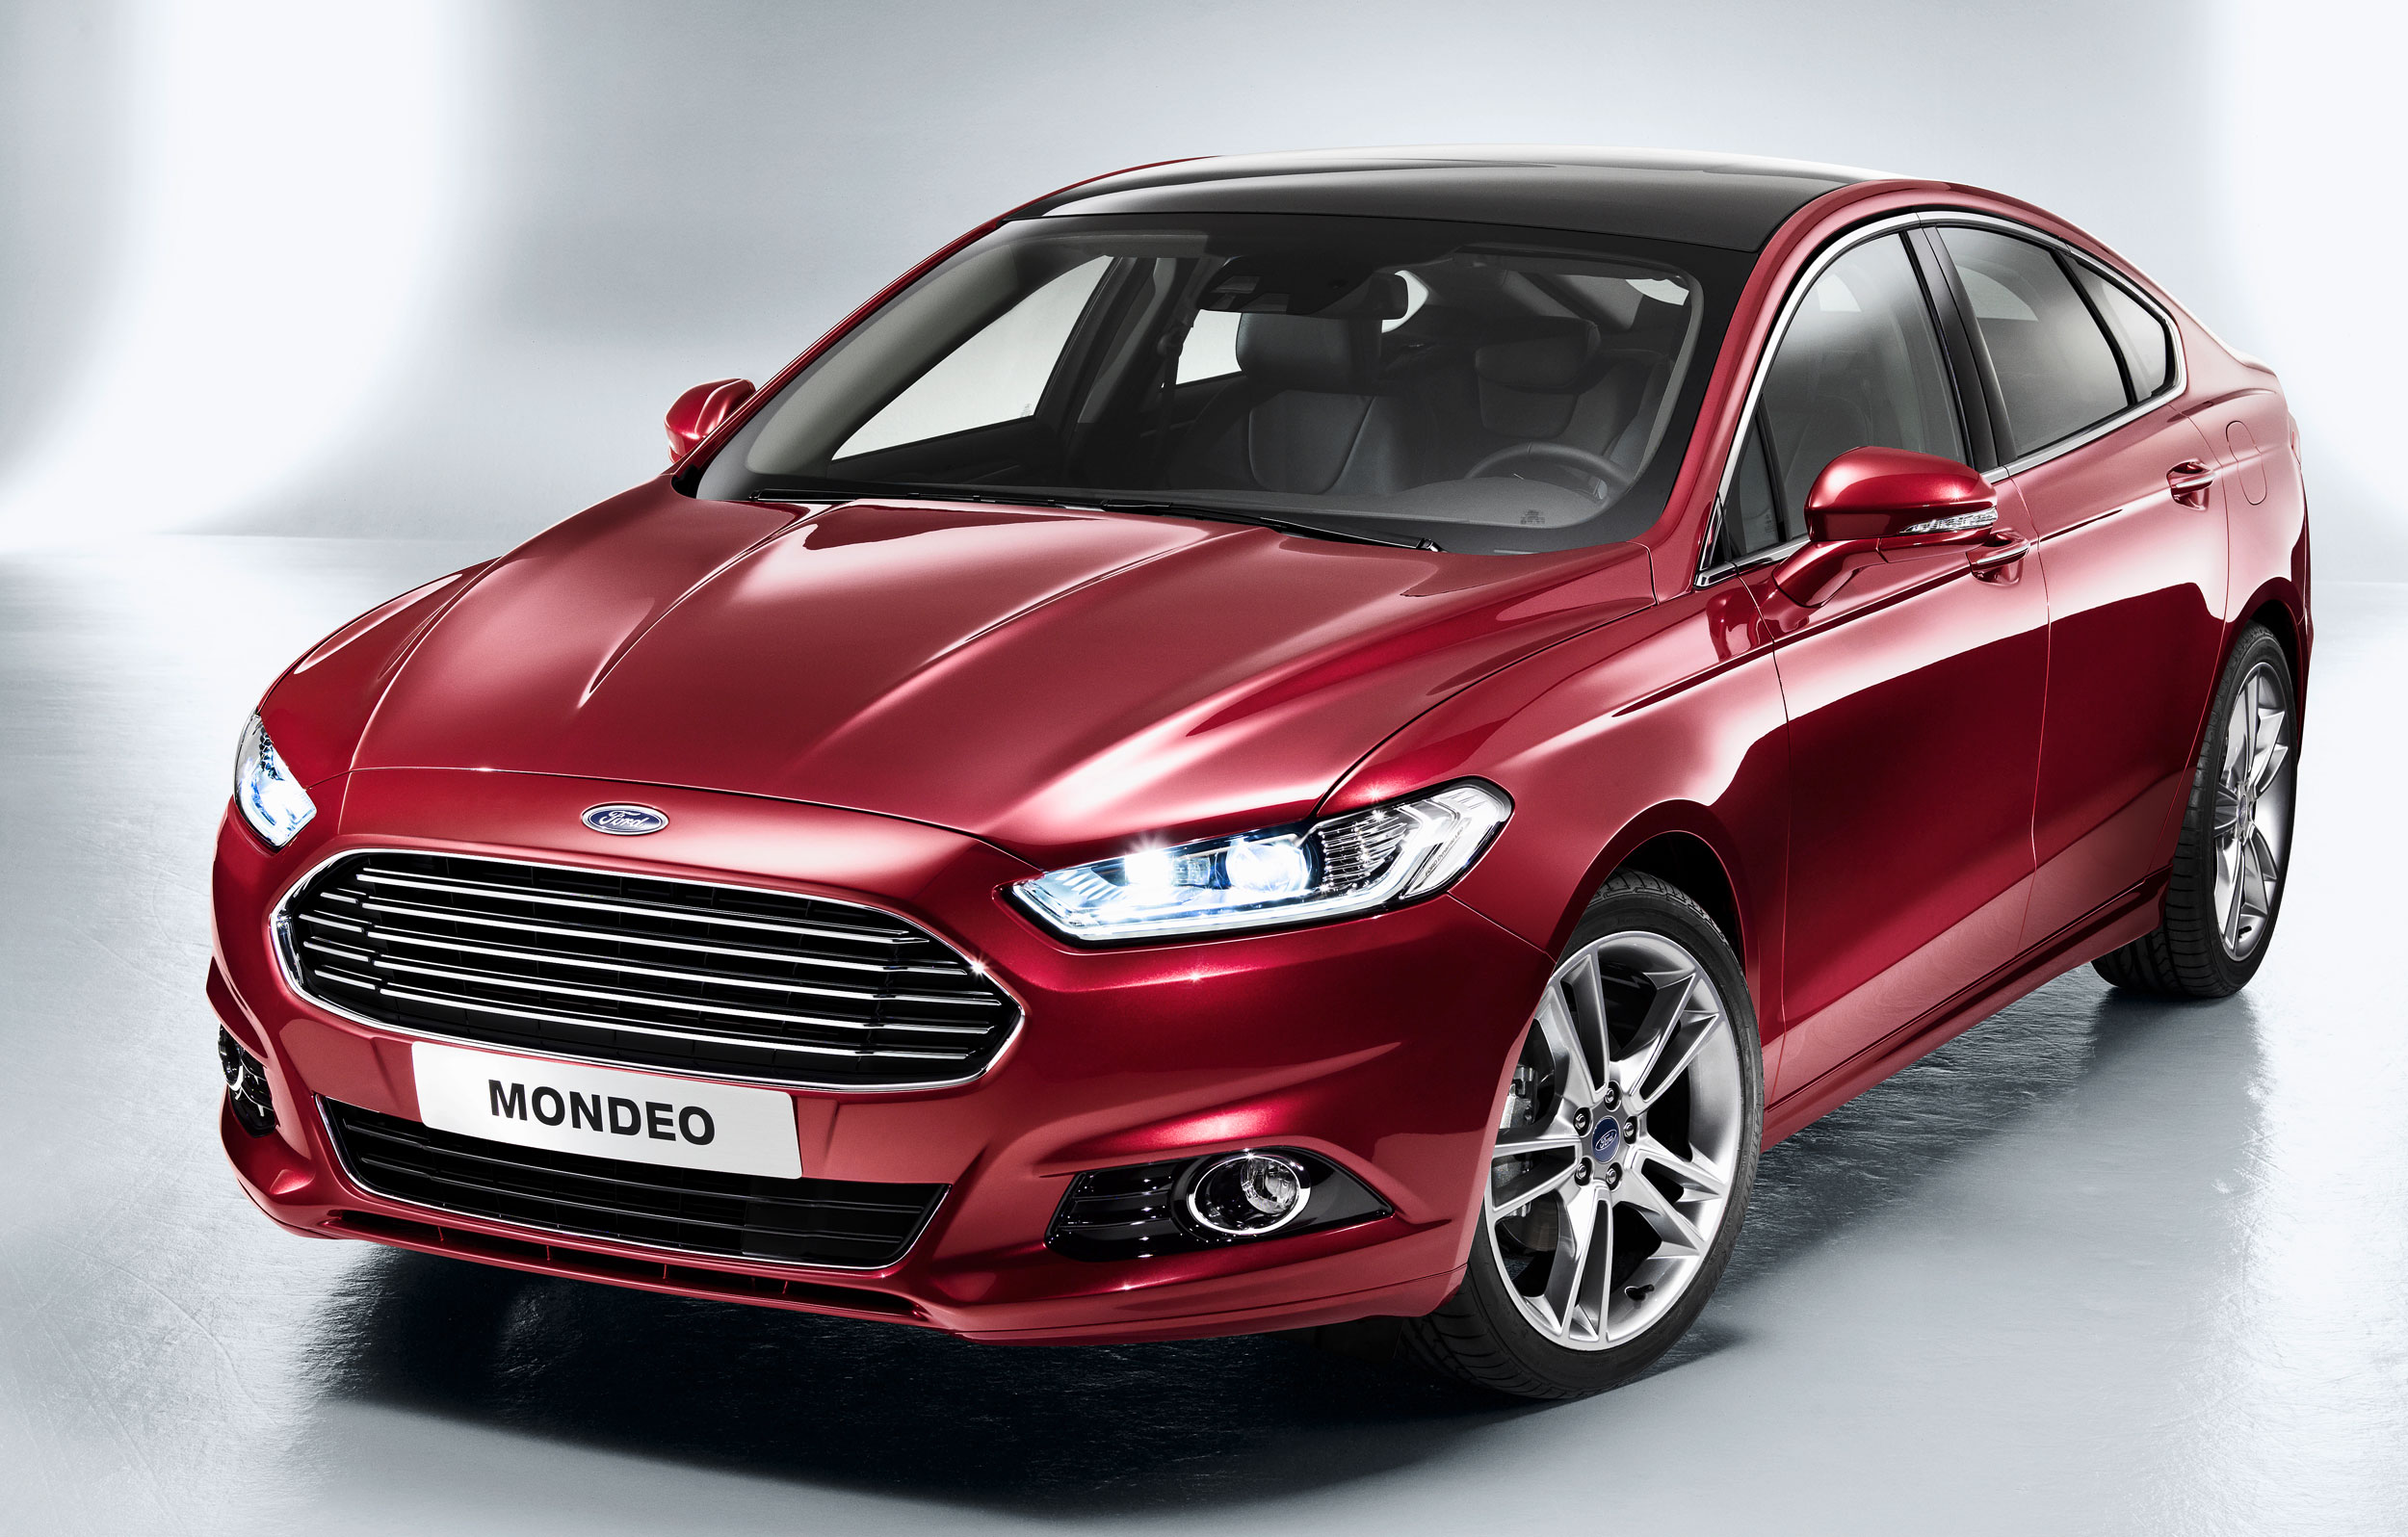 ford mondeo images #5